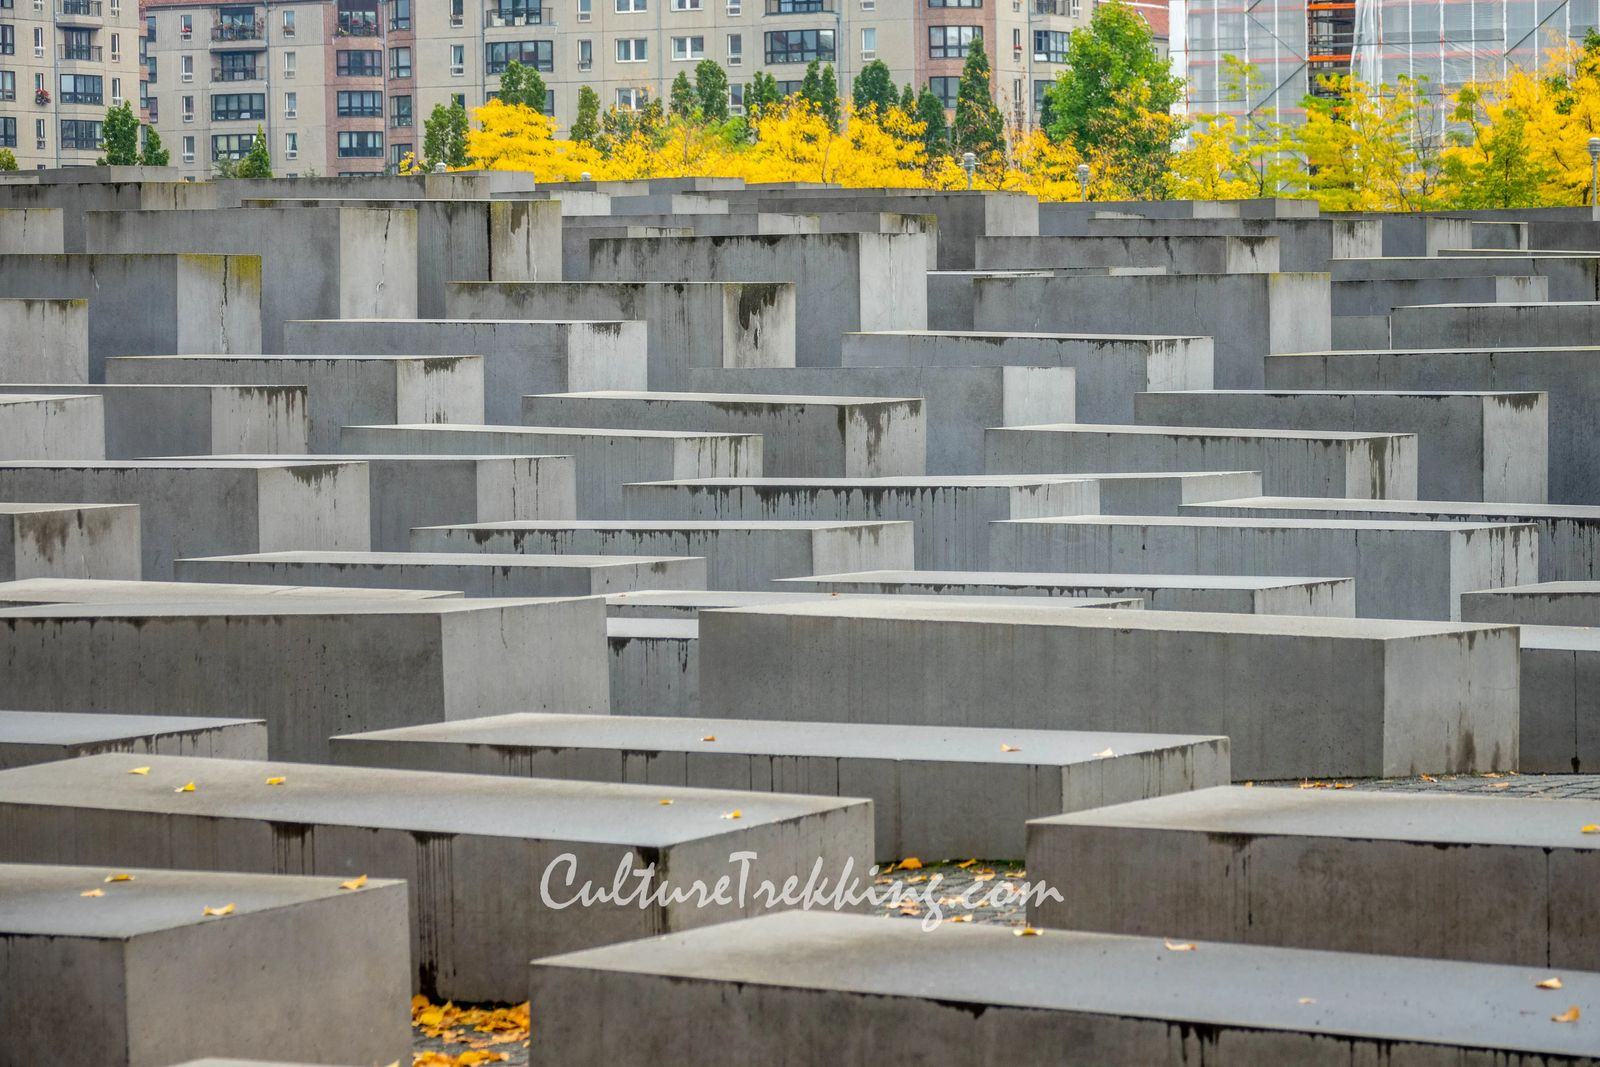 backpacking Eastern Europe 12 hours in Berlin and what to see. Large concrete slabs of varying sizes that resemble Jewish graves